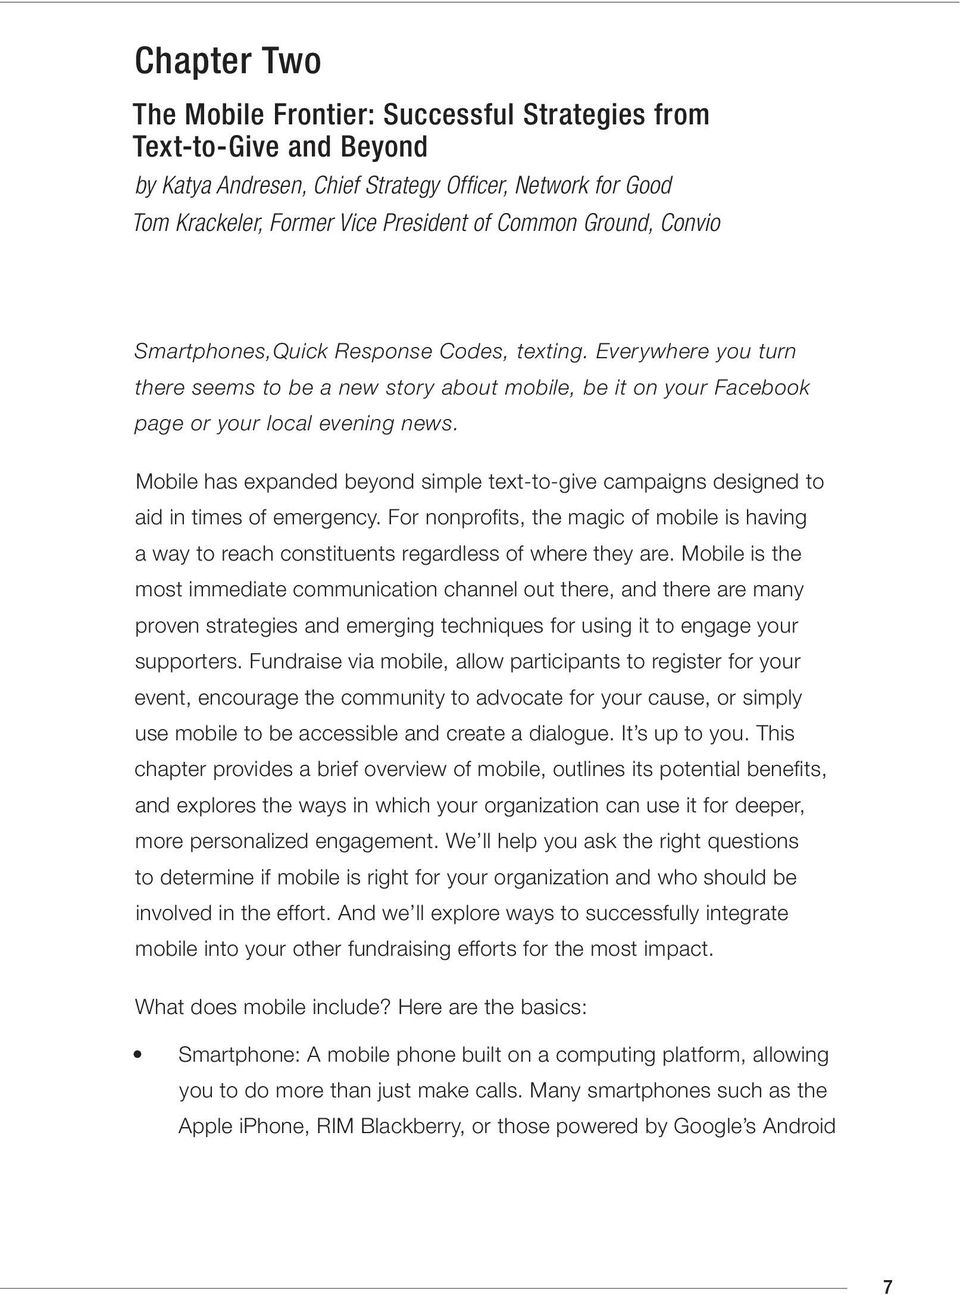 Mobile has expanded beyond simple text-to-give campaigns designed to aid in times of emergency. For nonprofits, the magic of mobile is having a way to reach constituents regardless of where they are.